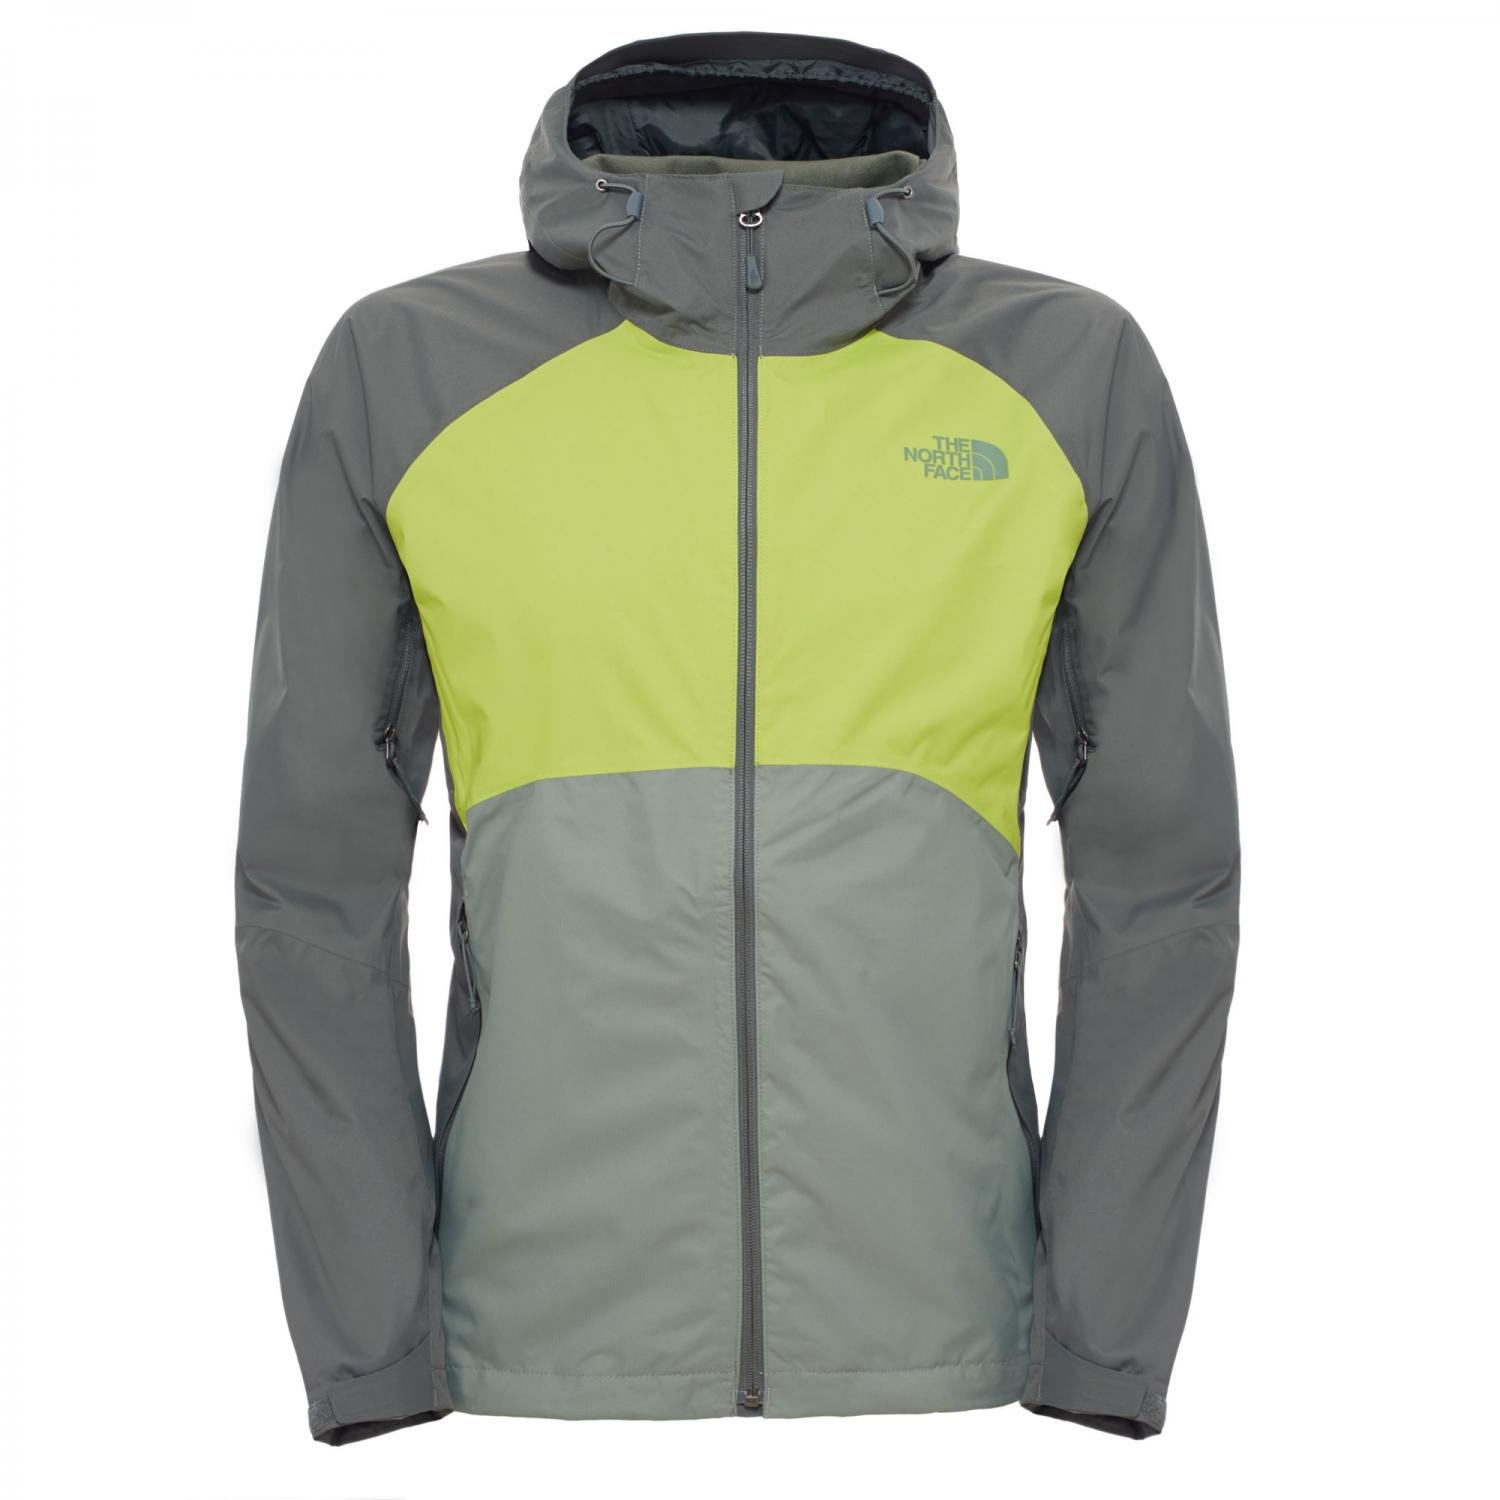 The North Face Herren Jacke M Sequence Jacket